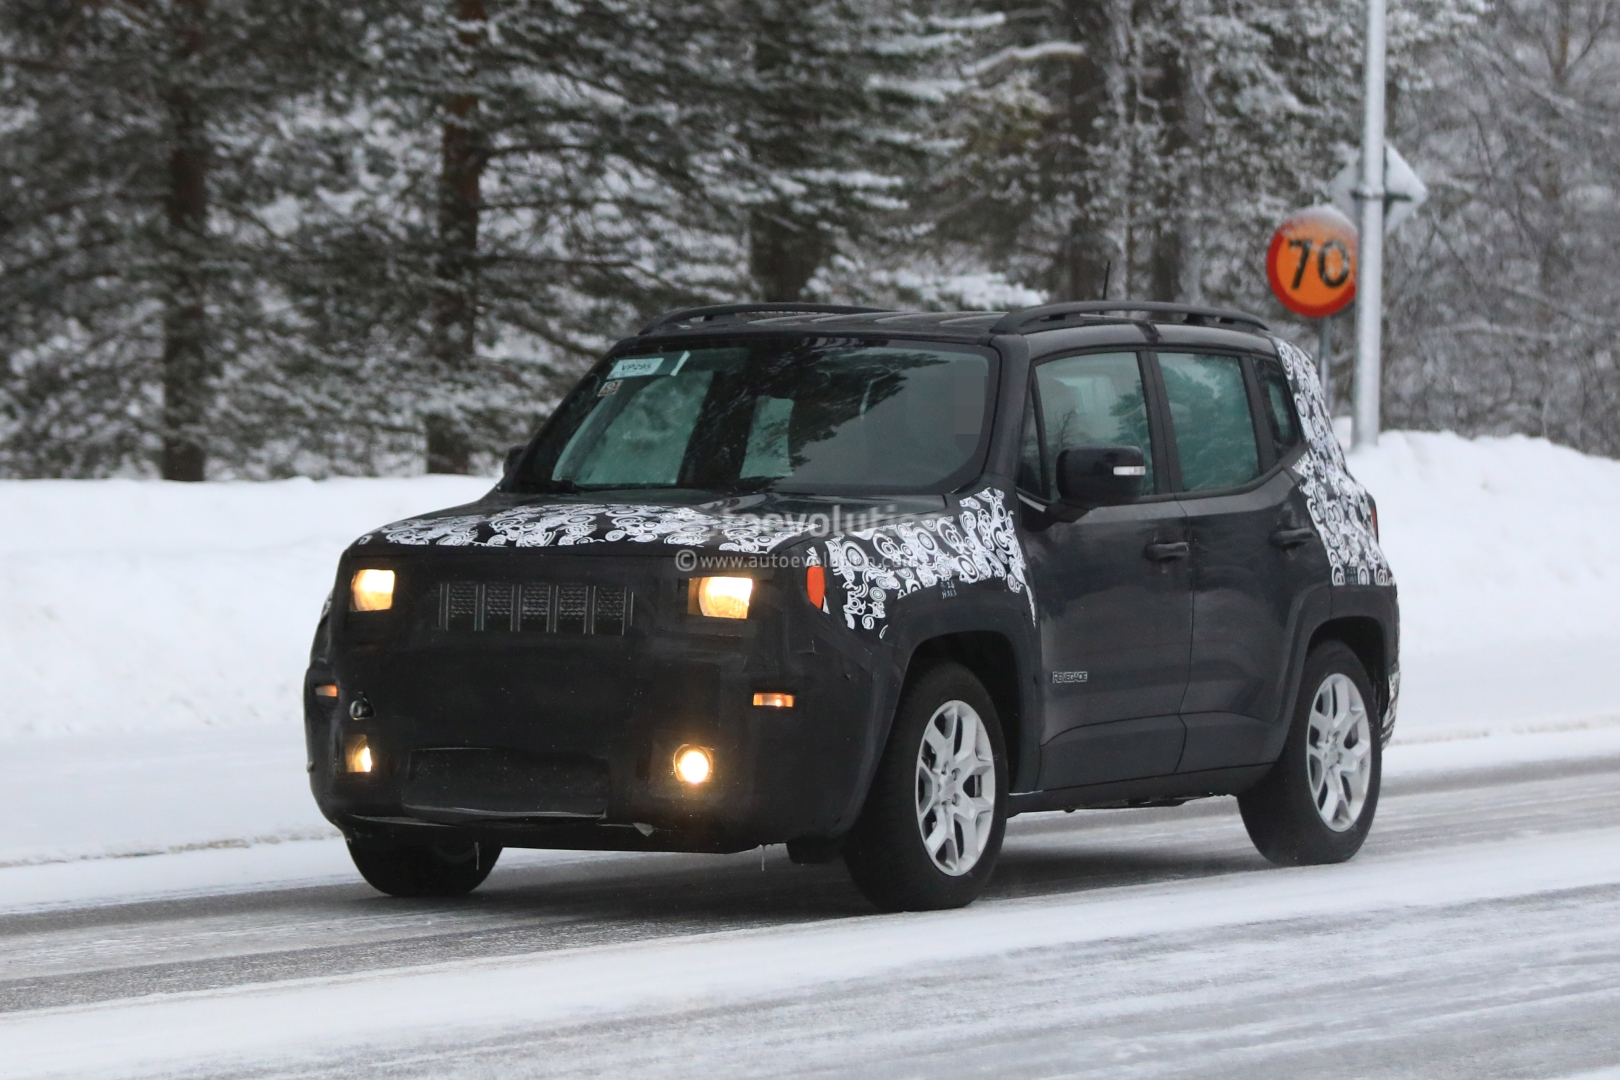 Spyshots 2019 Jeep Renegade Facelift Reveals Updated Interior